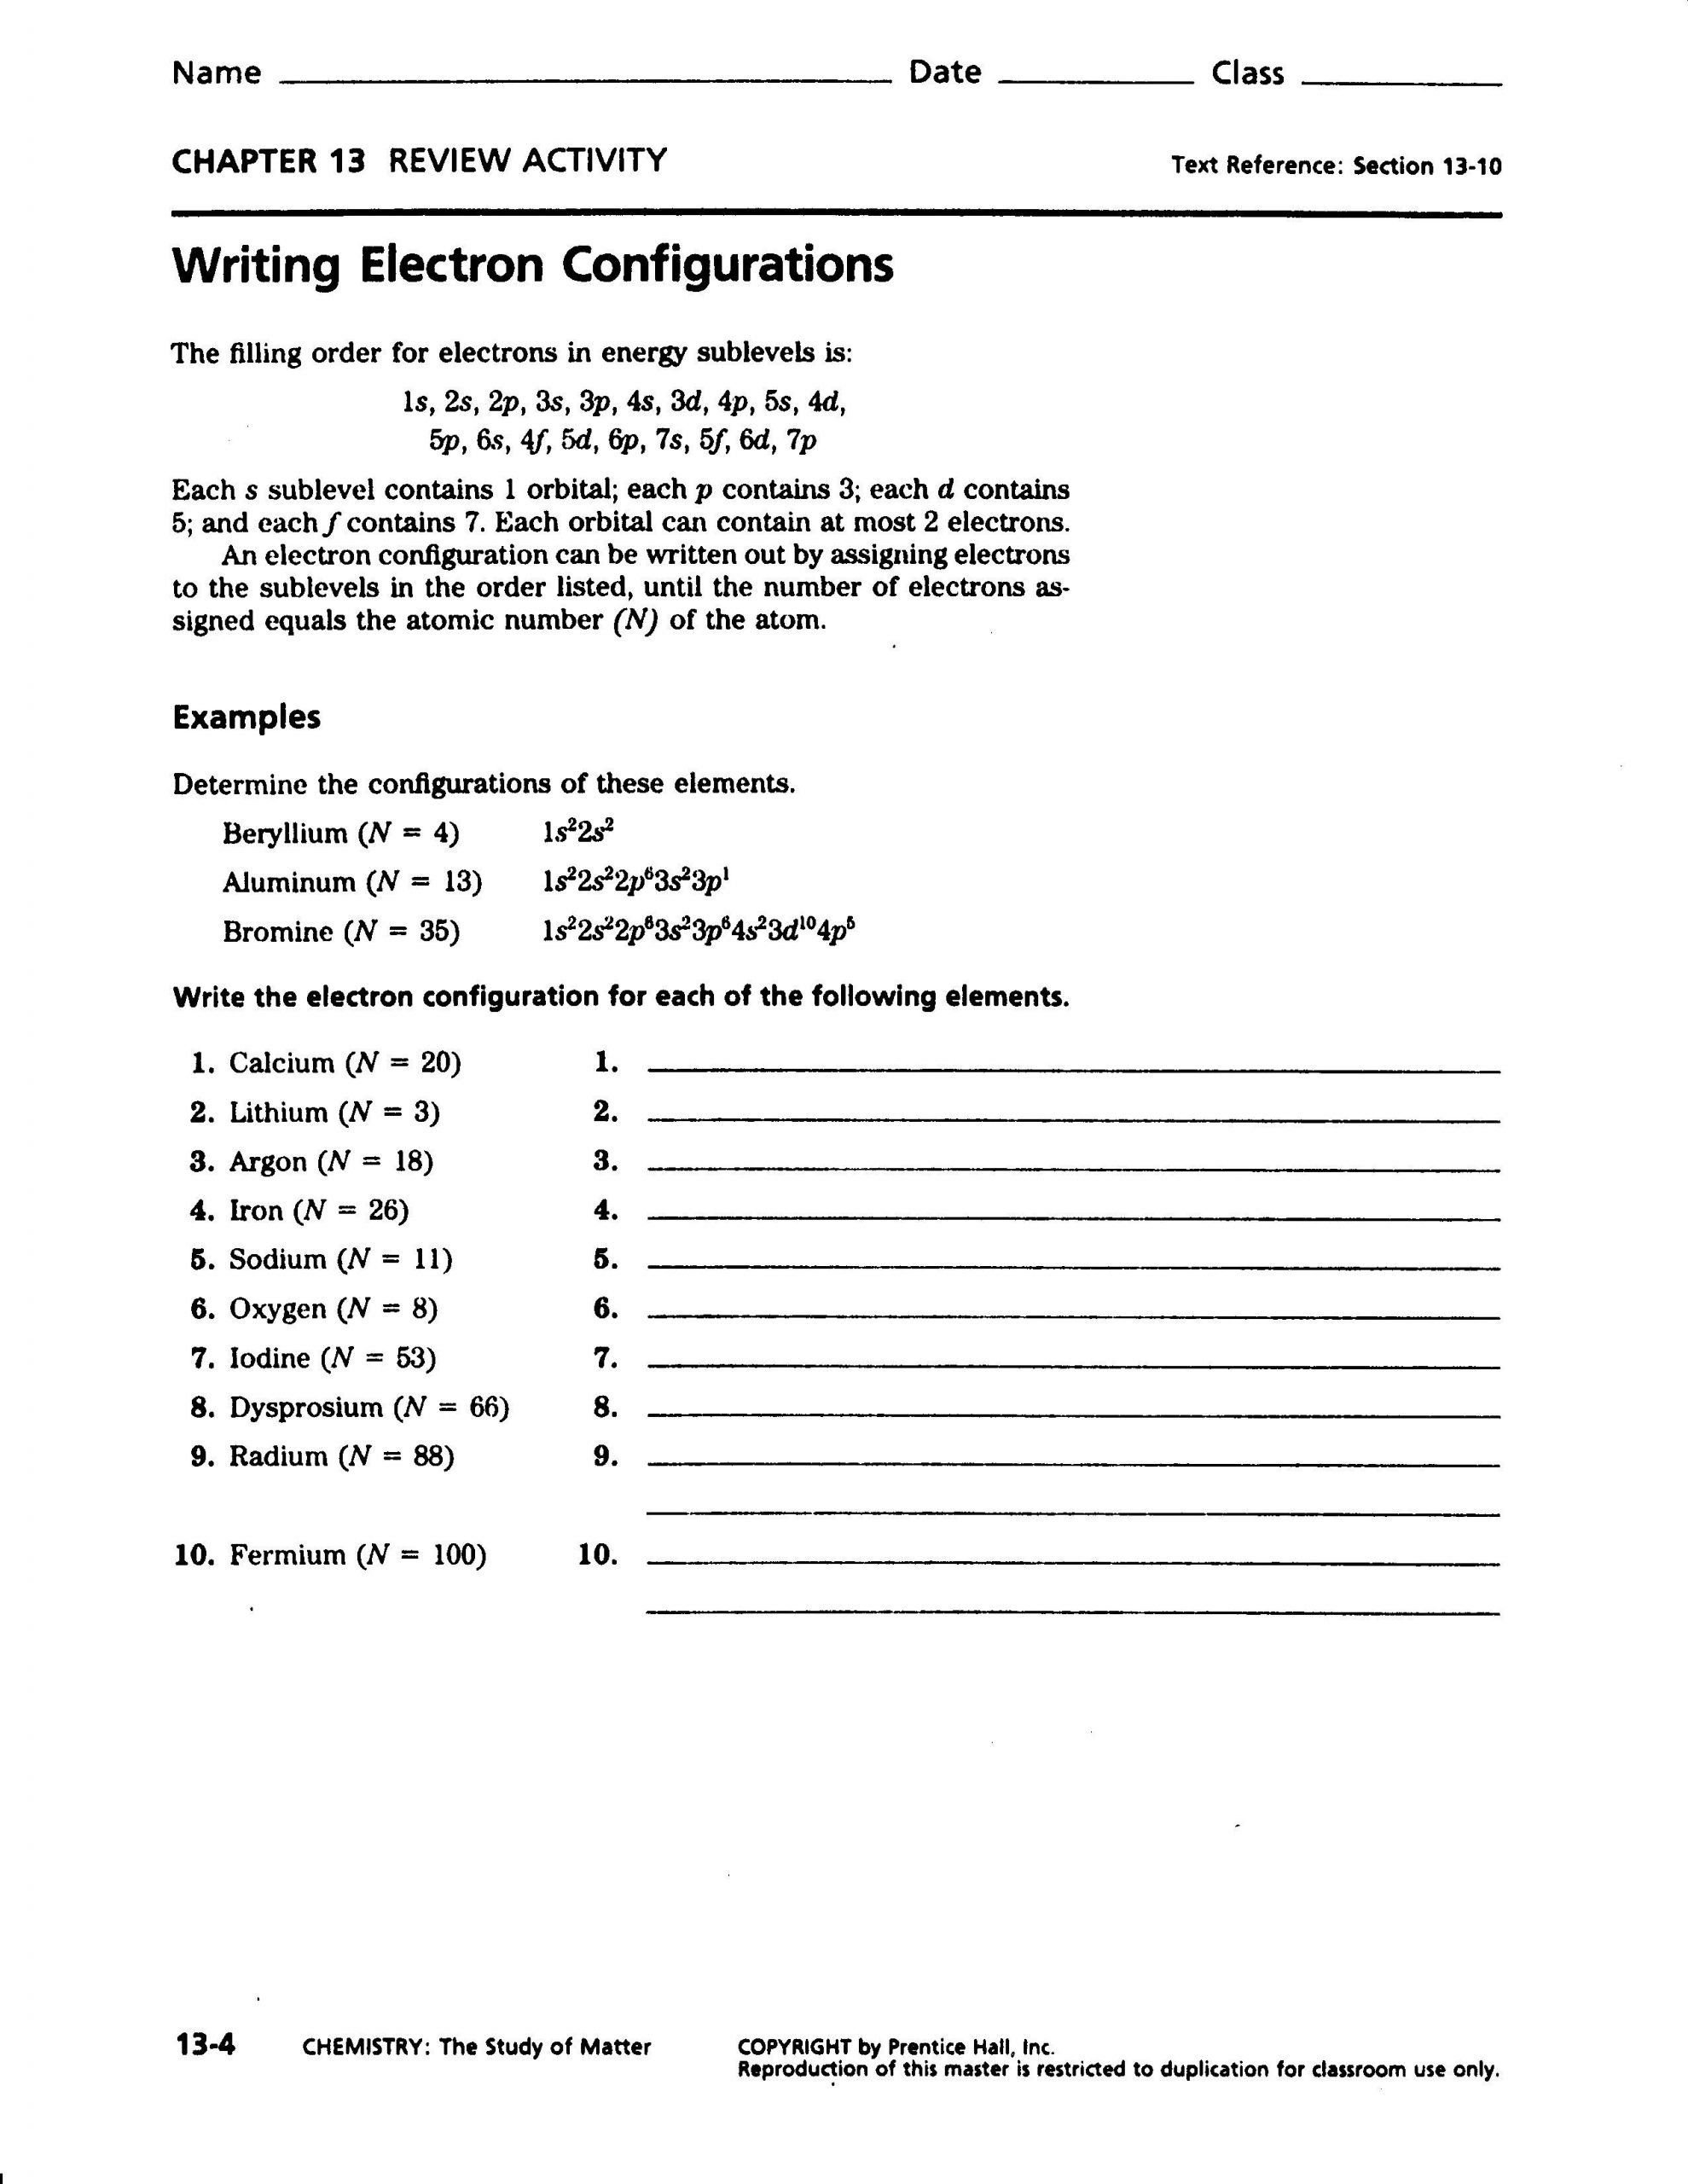 Electron Configuration Worksheet Answers Key Electron